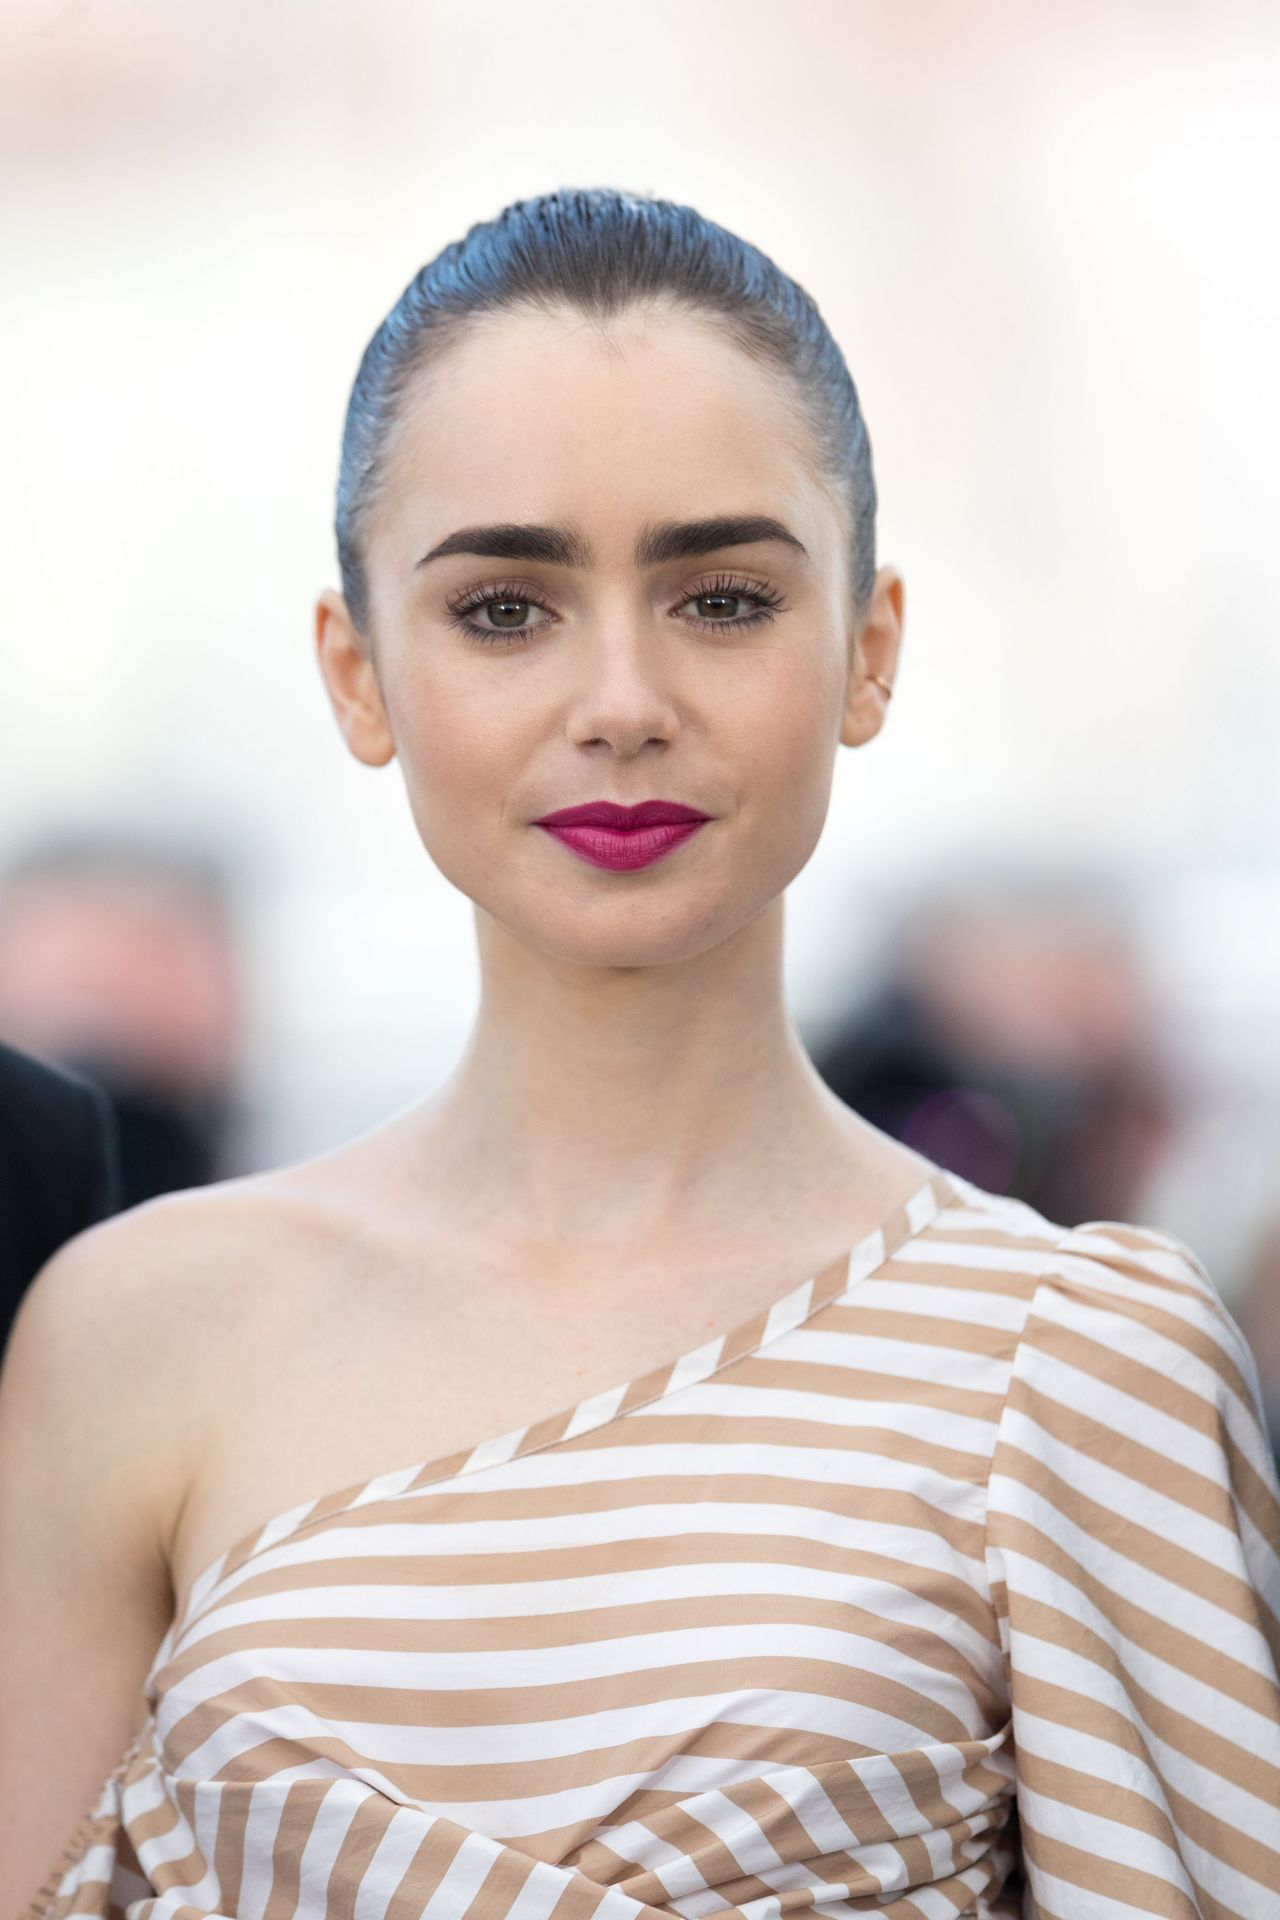 lily-collins-okja-photocall-at-70th-cannes-film-festival-05-19-2017-8.jpg (1280×1920)